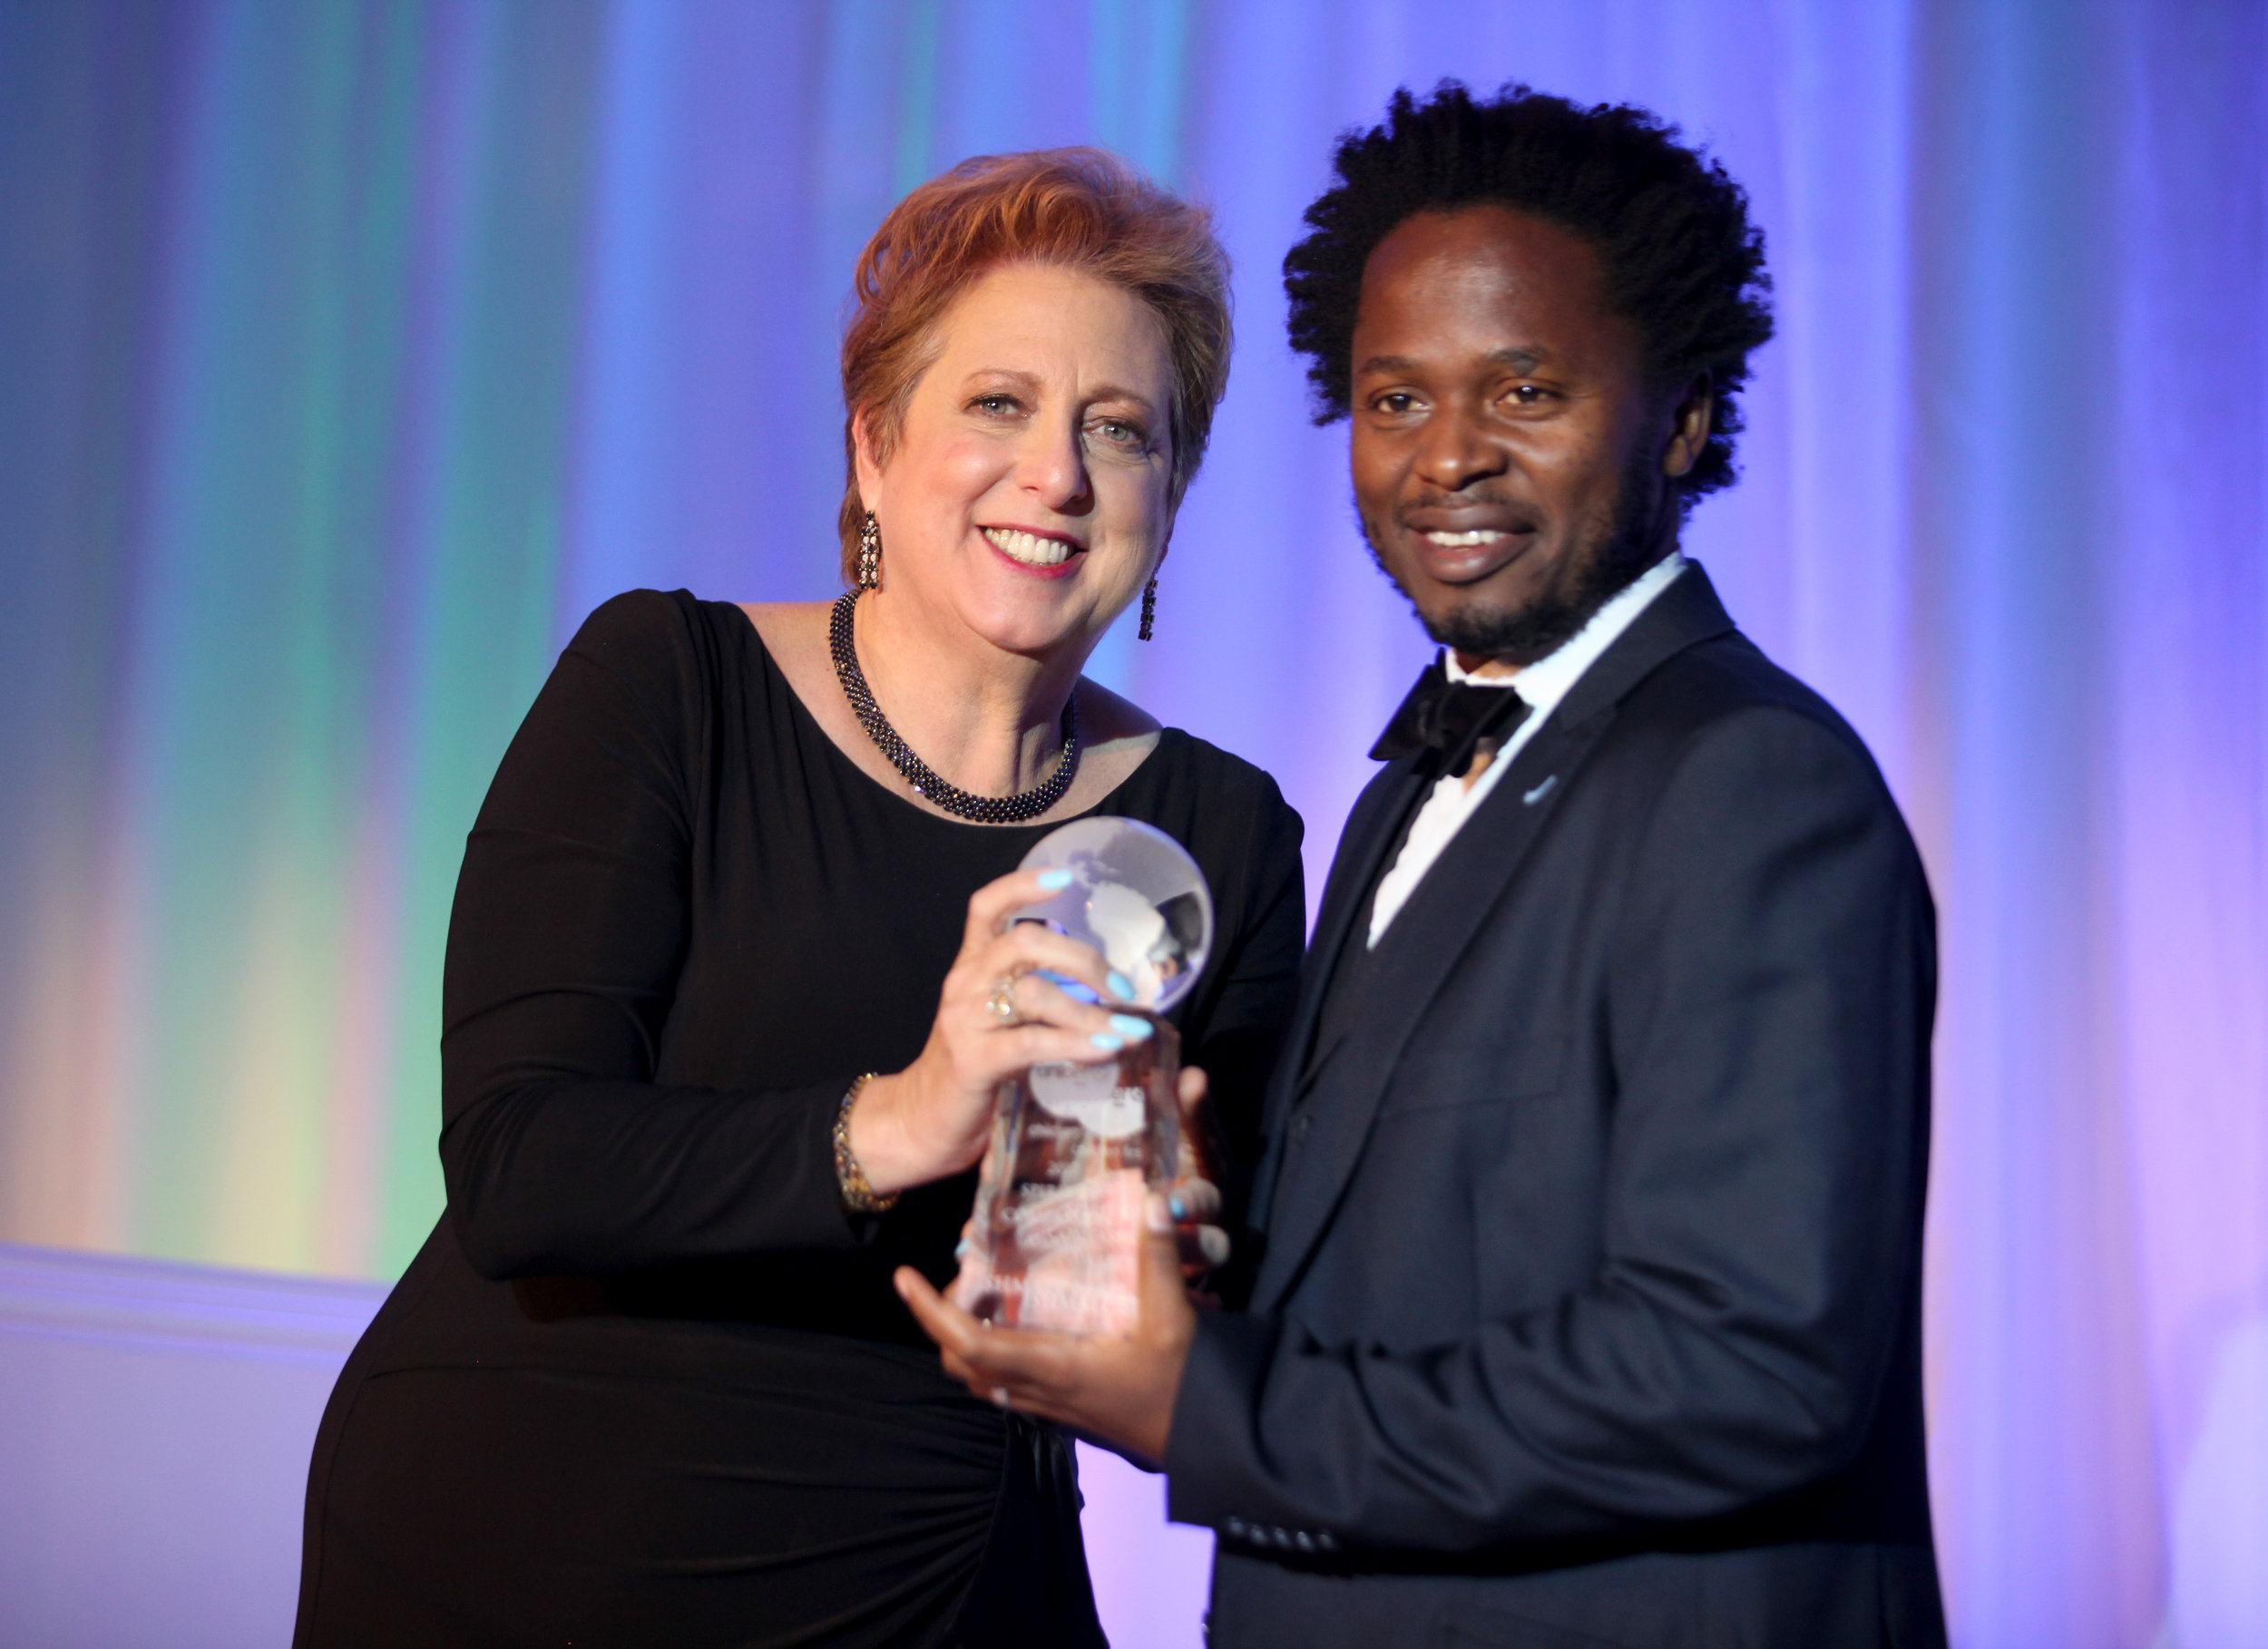 President & CEO Caryl Stern presenting the Spirit of Compassion Award to UNICEF Goodwill Ambassador Ishmael Beah (Photo by Getty Images)